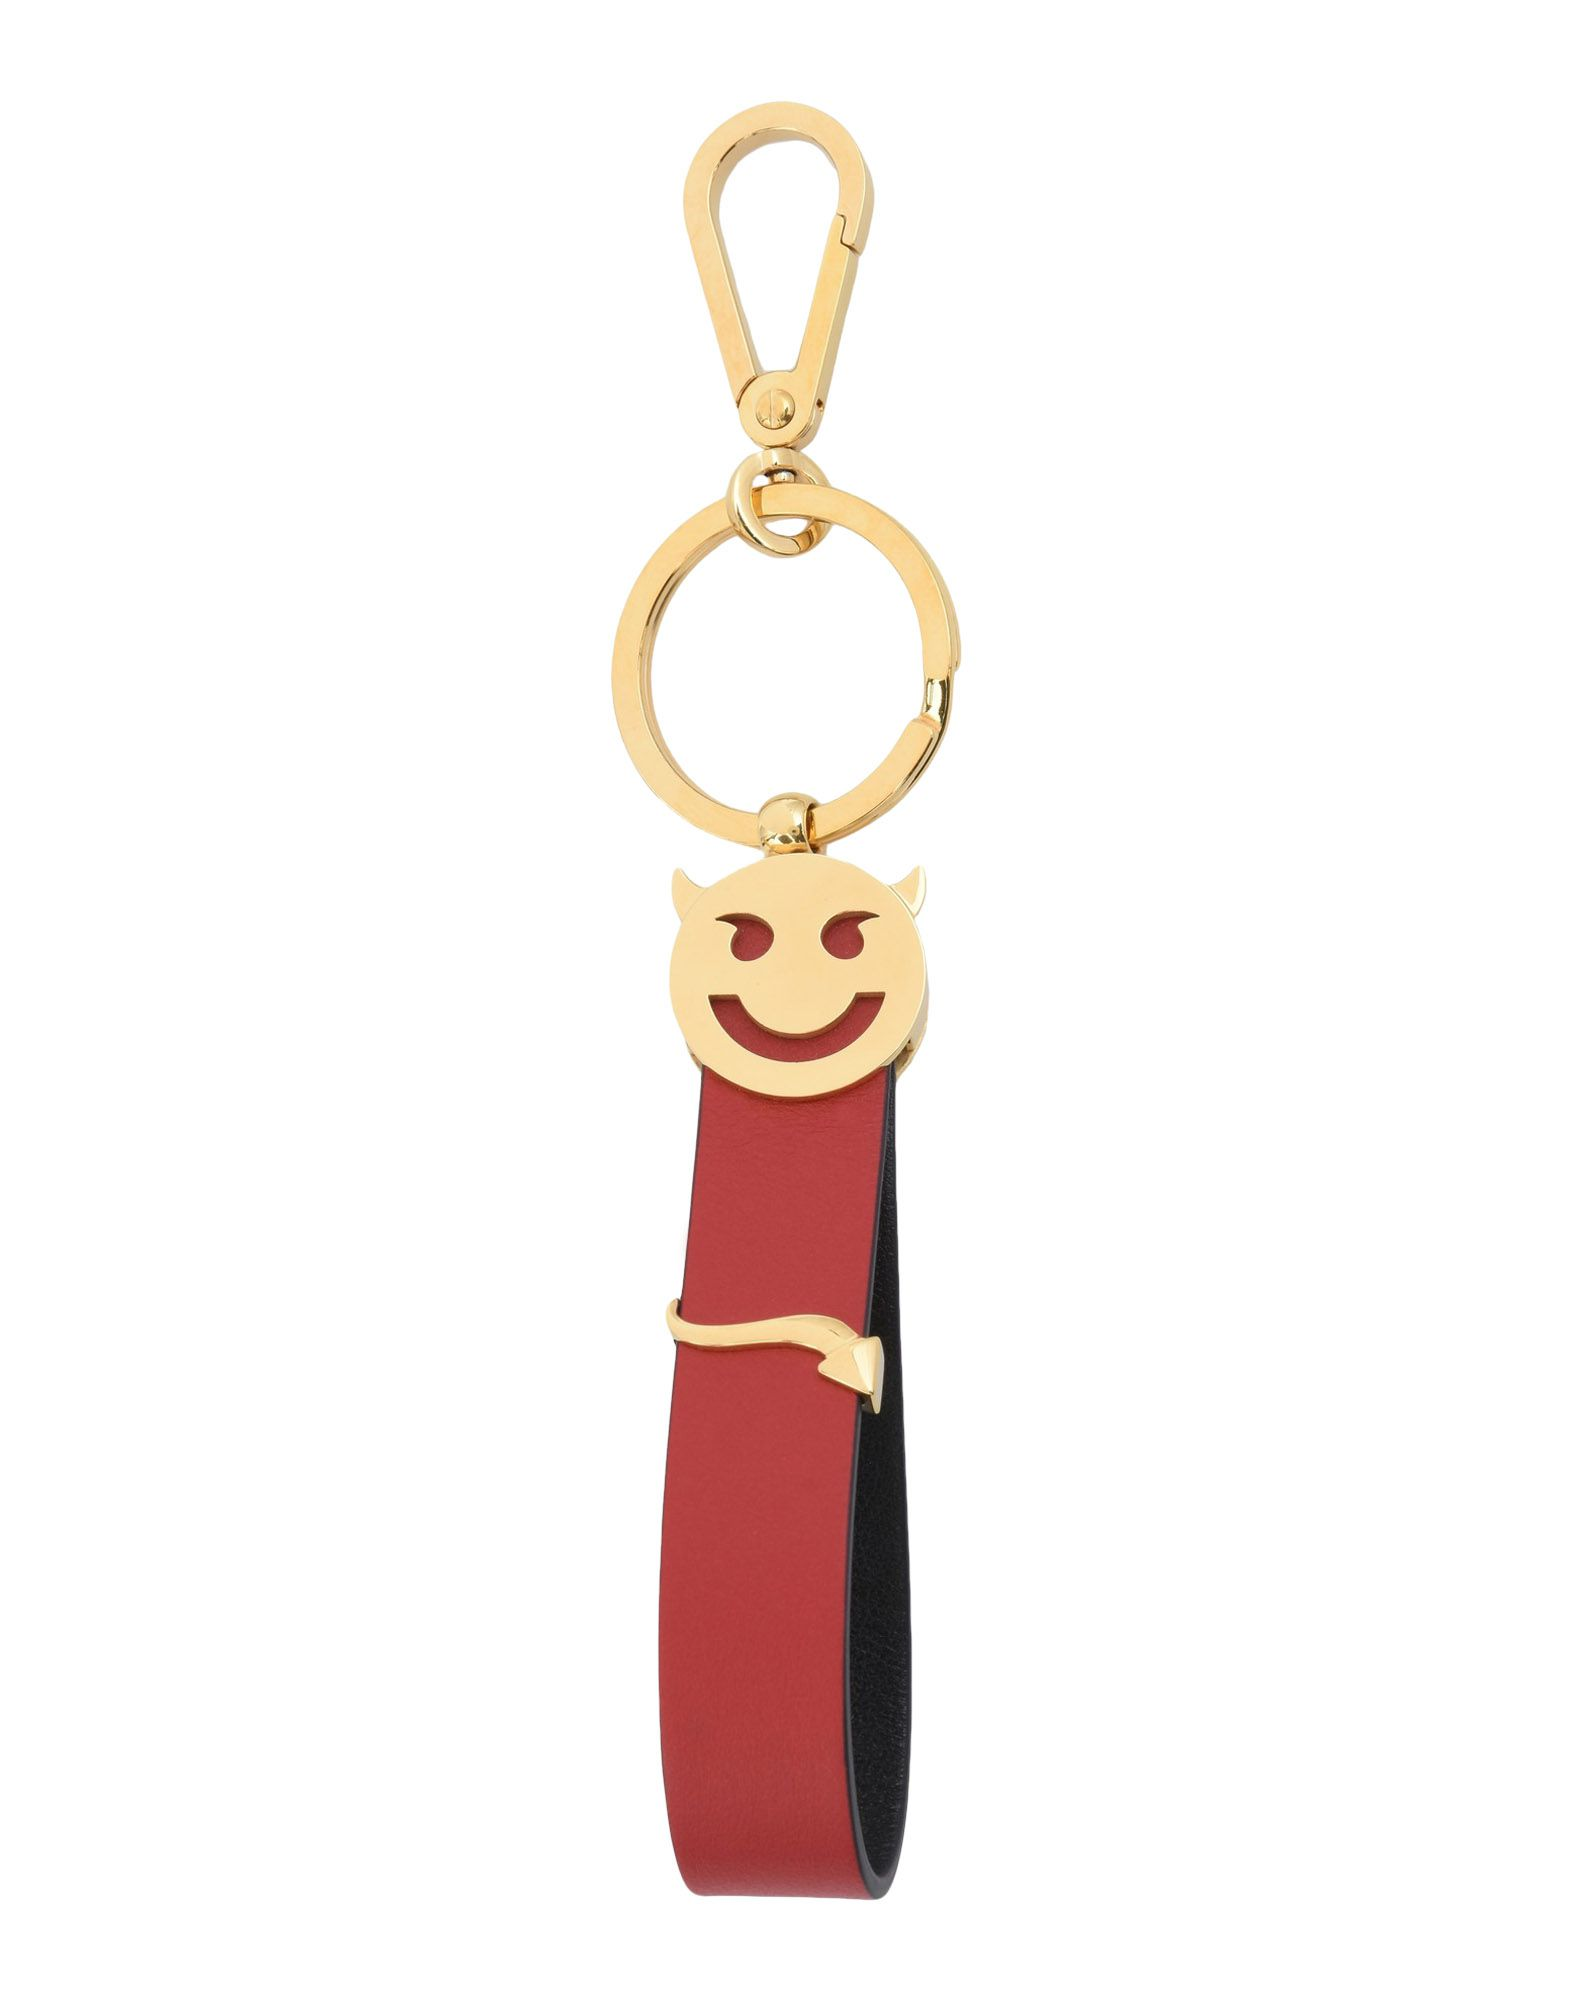 RUIFIER Key Ring in Red